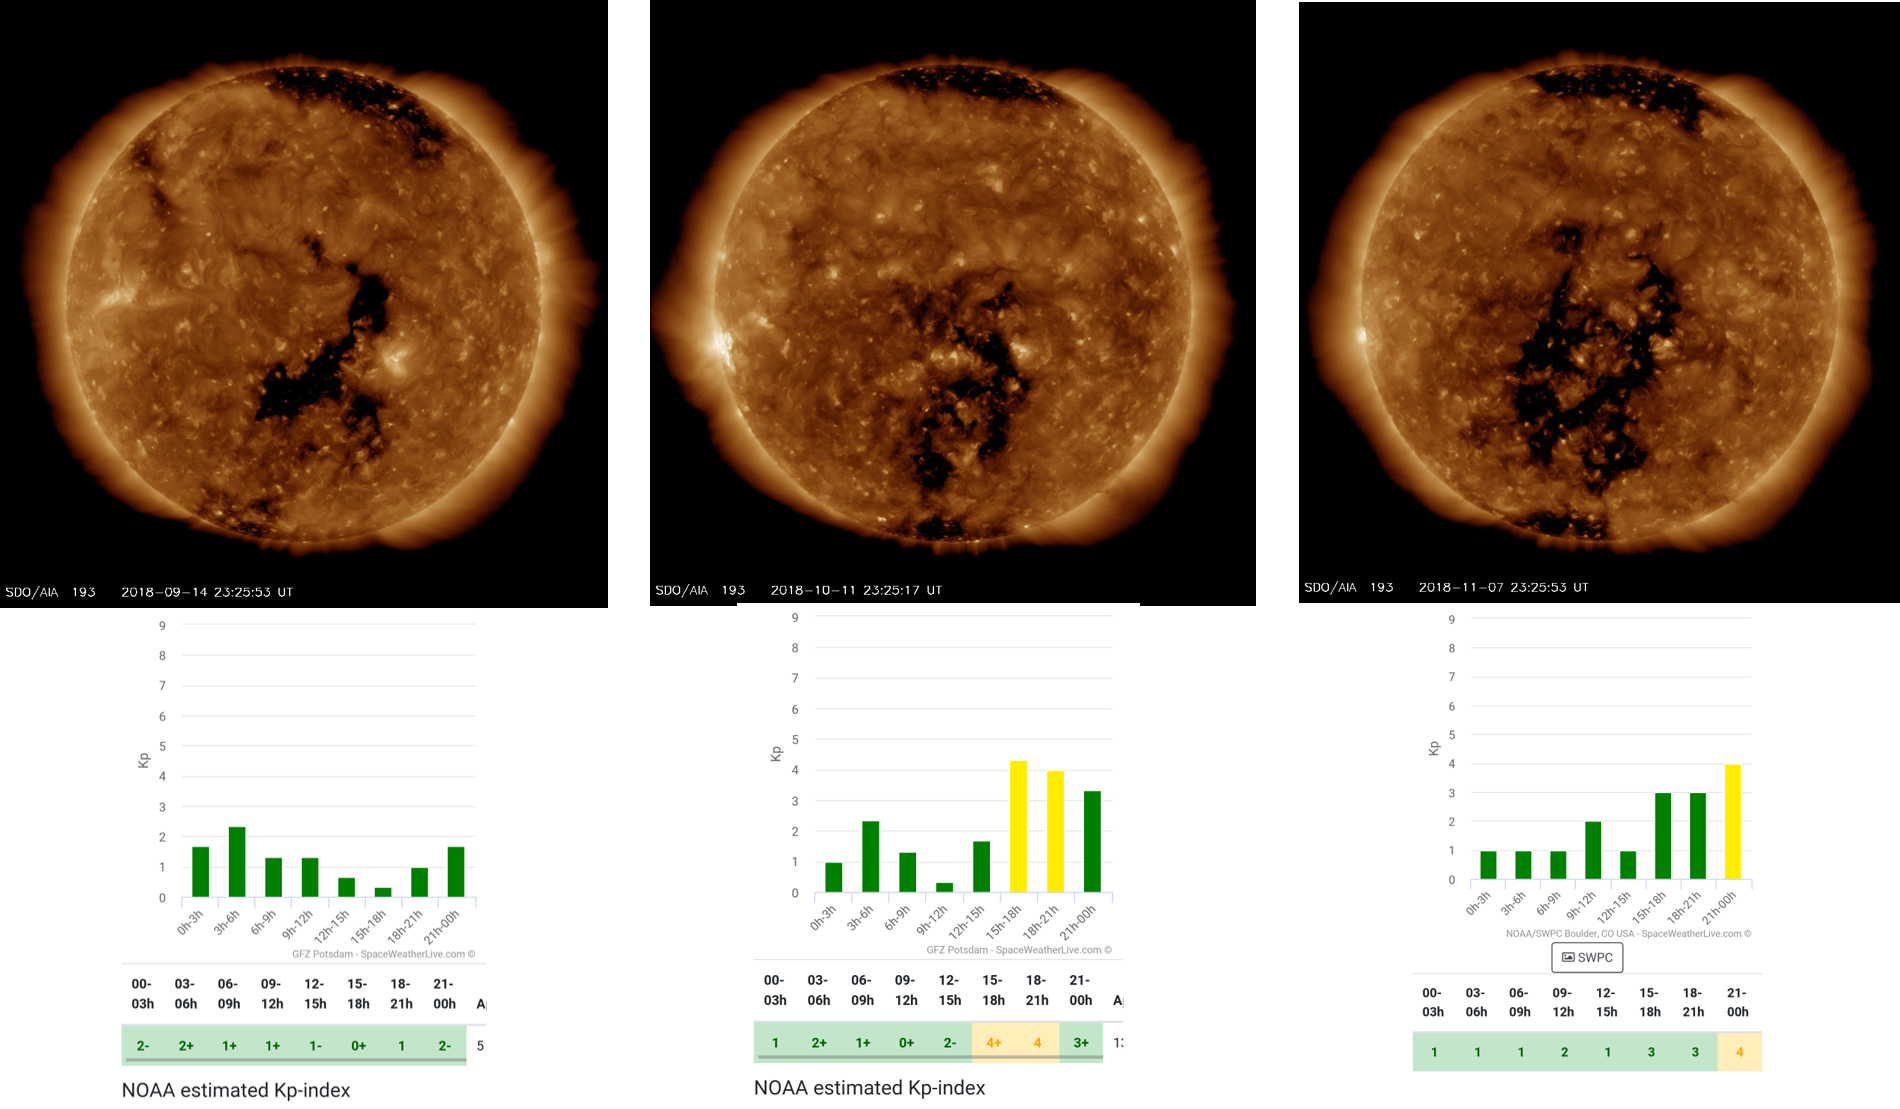 The Coronal Hole during its last three passes, along with the K index it produced (a measure of the strength of aurora is produced). You can see the K index was elevated at 21.00 - just when we were photographing the substorm at the Giant's Causeway.